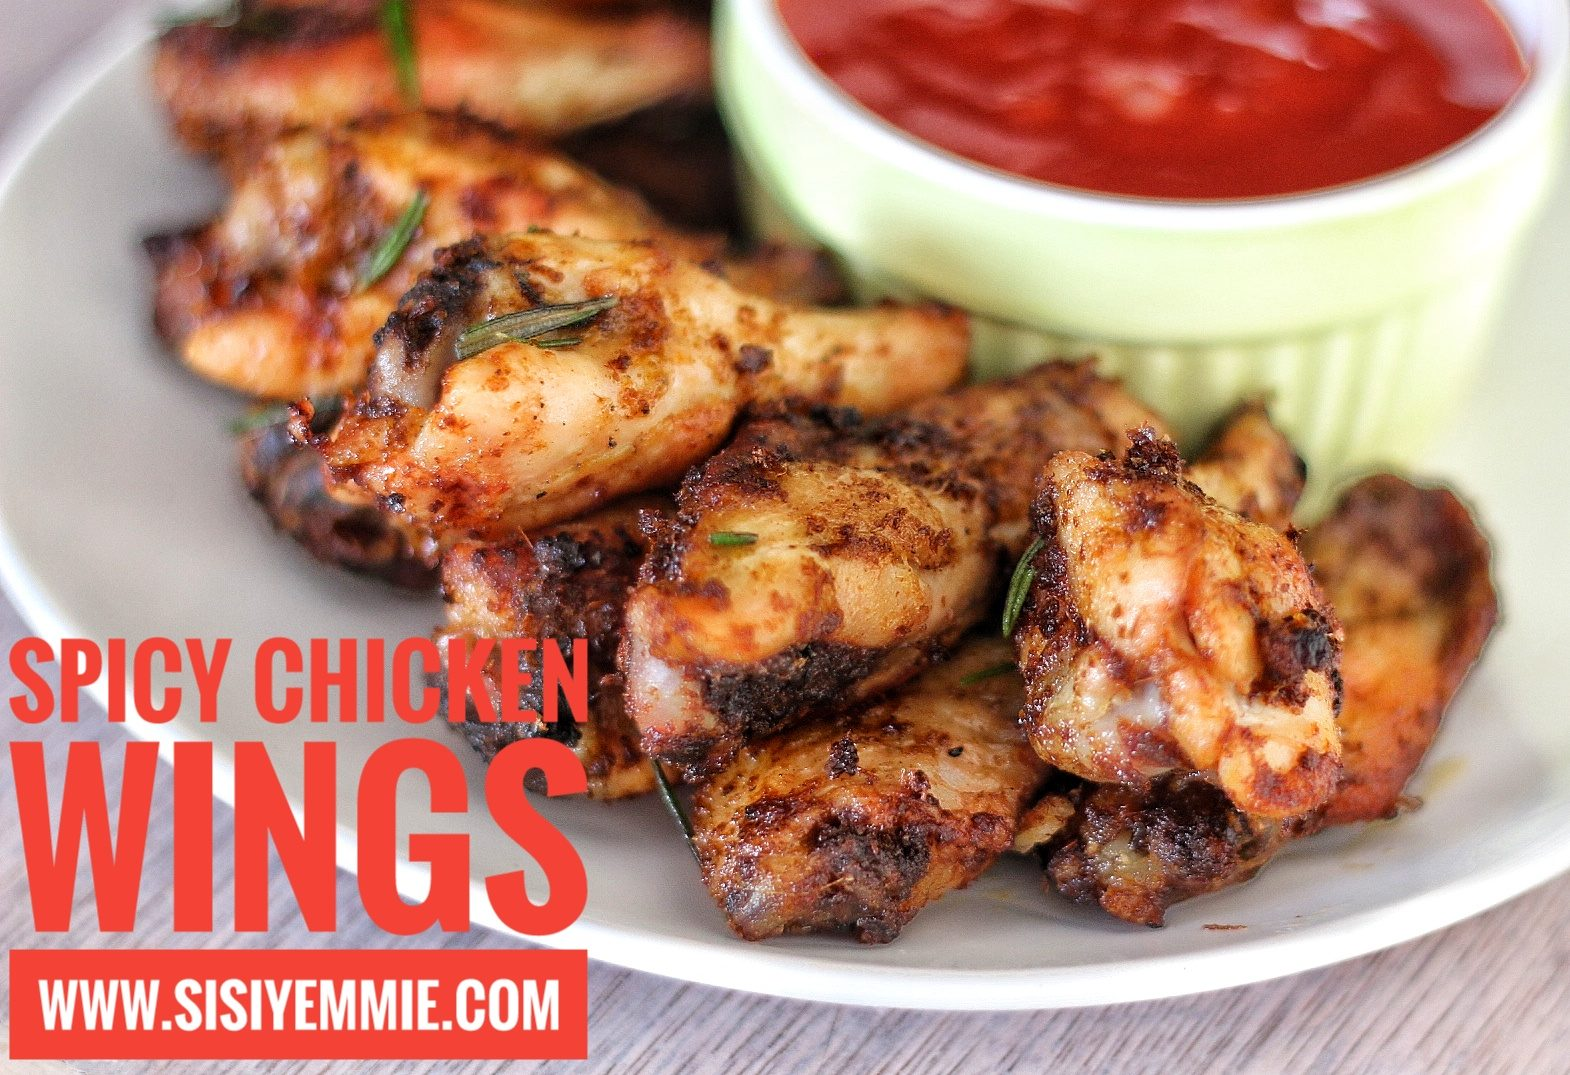 Spicy Shito Chicken Wings (www.sisiyemmie.com)